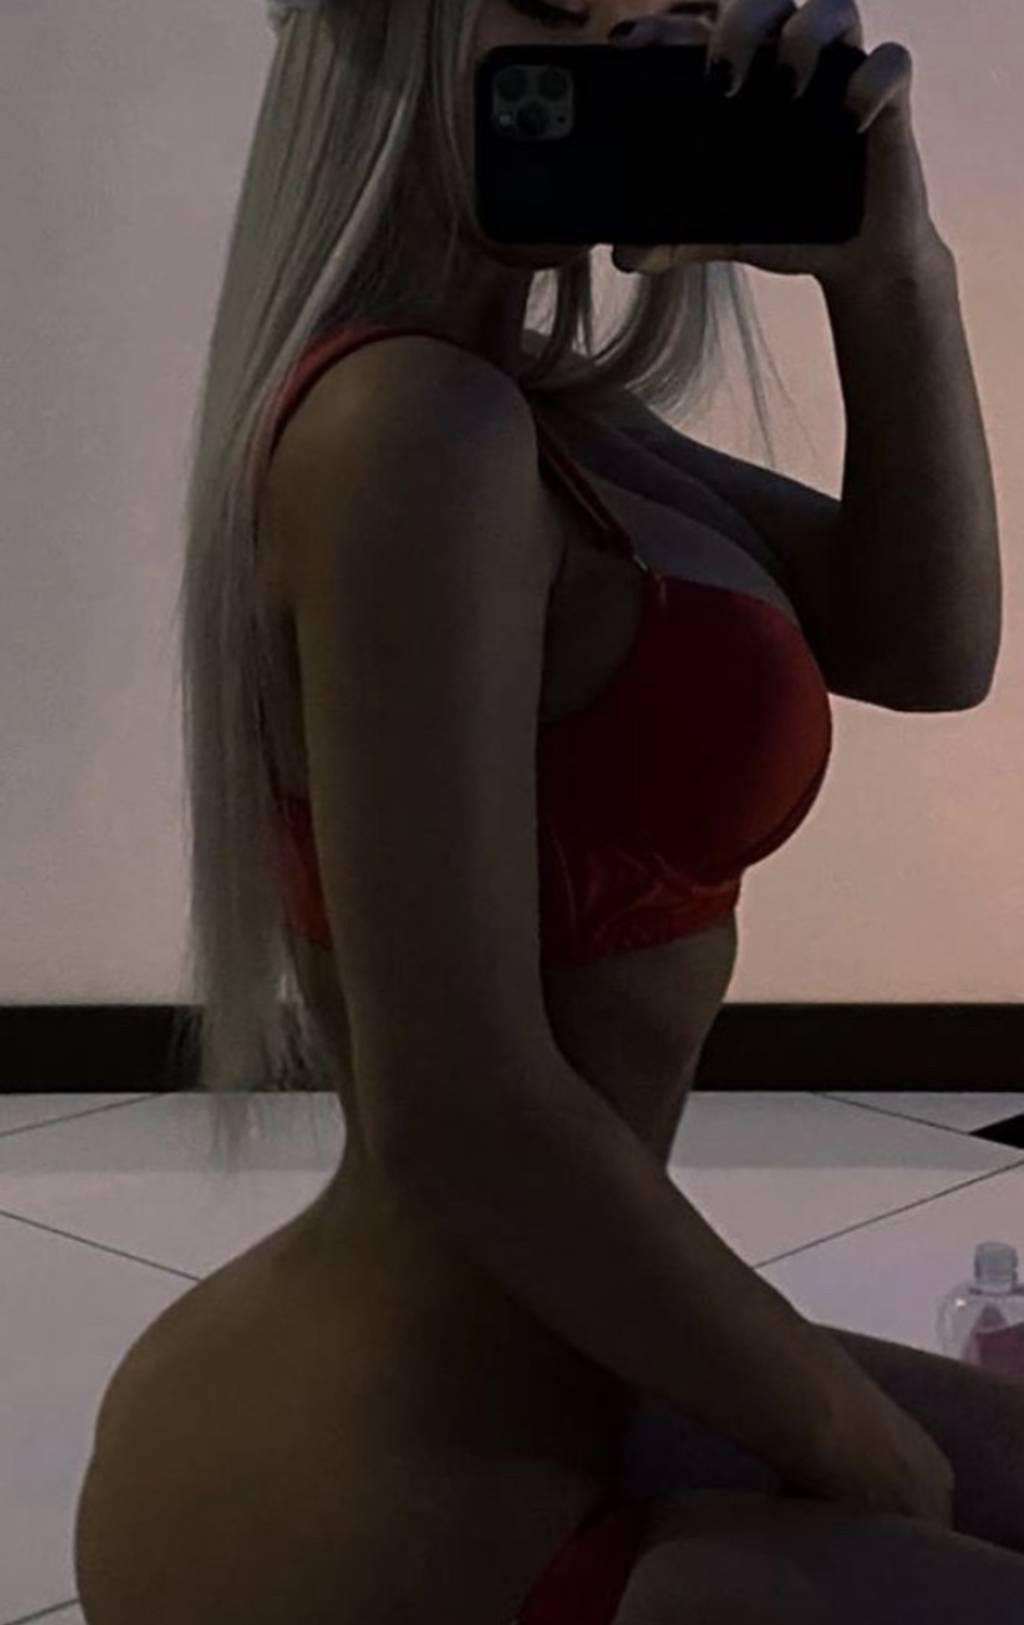 upscale outcalls dirty naughty blonde let's party